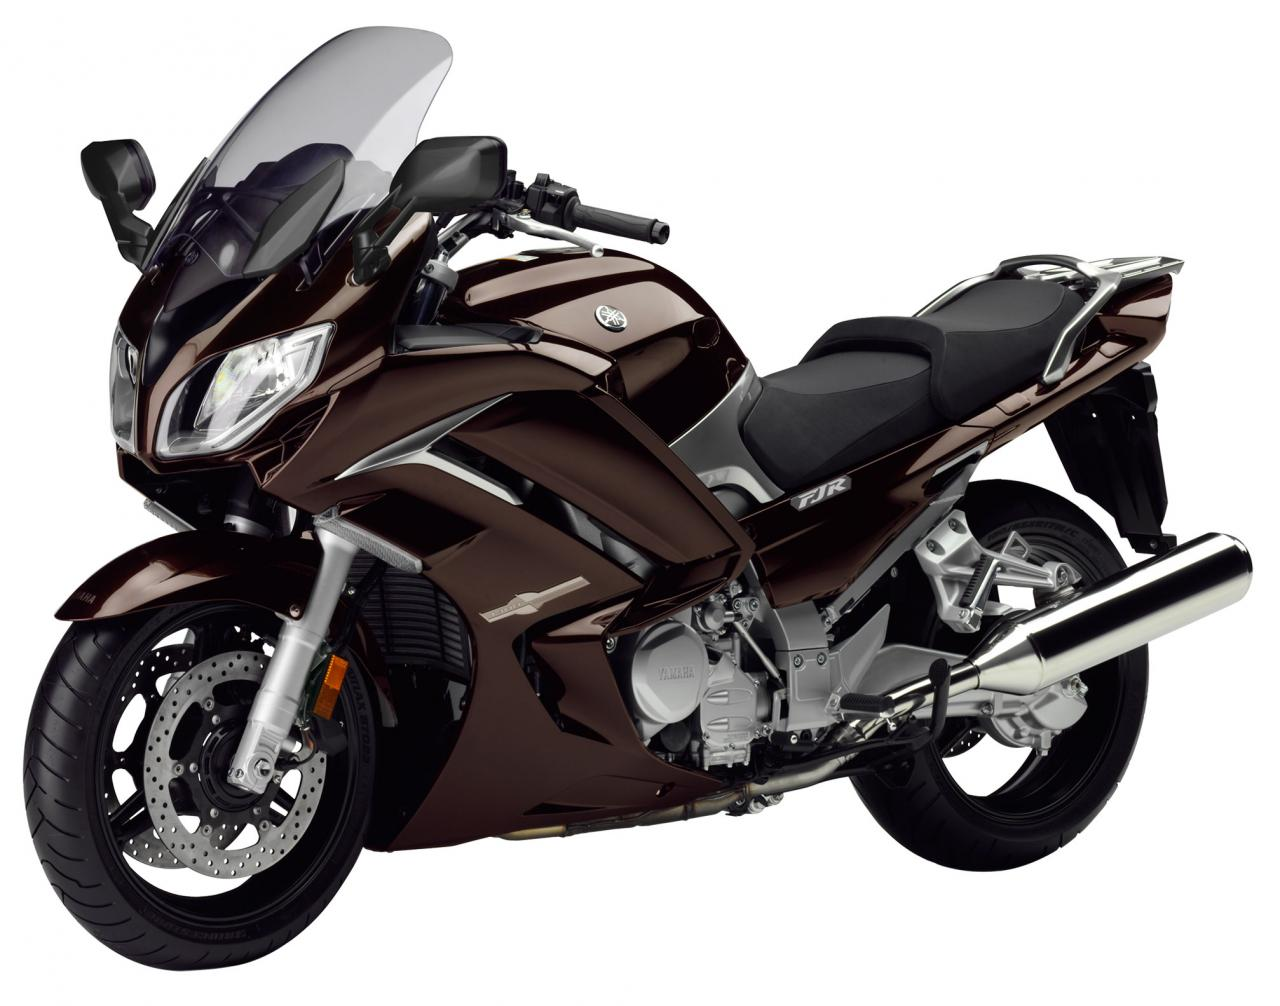 2009 yamaha fjr 1300 a moto zombdrive com. Black Bedroom Furniture Sets. Home Design Ideas